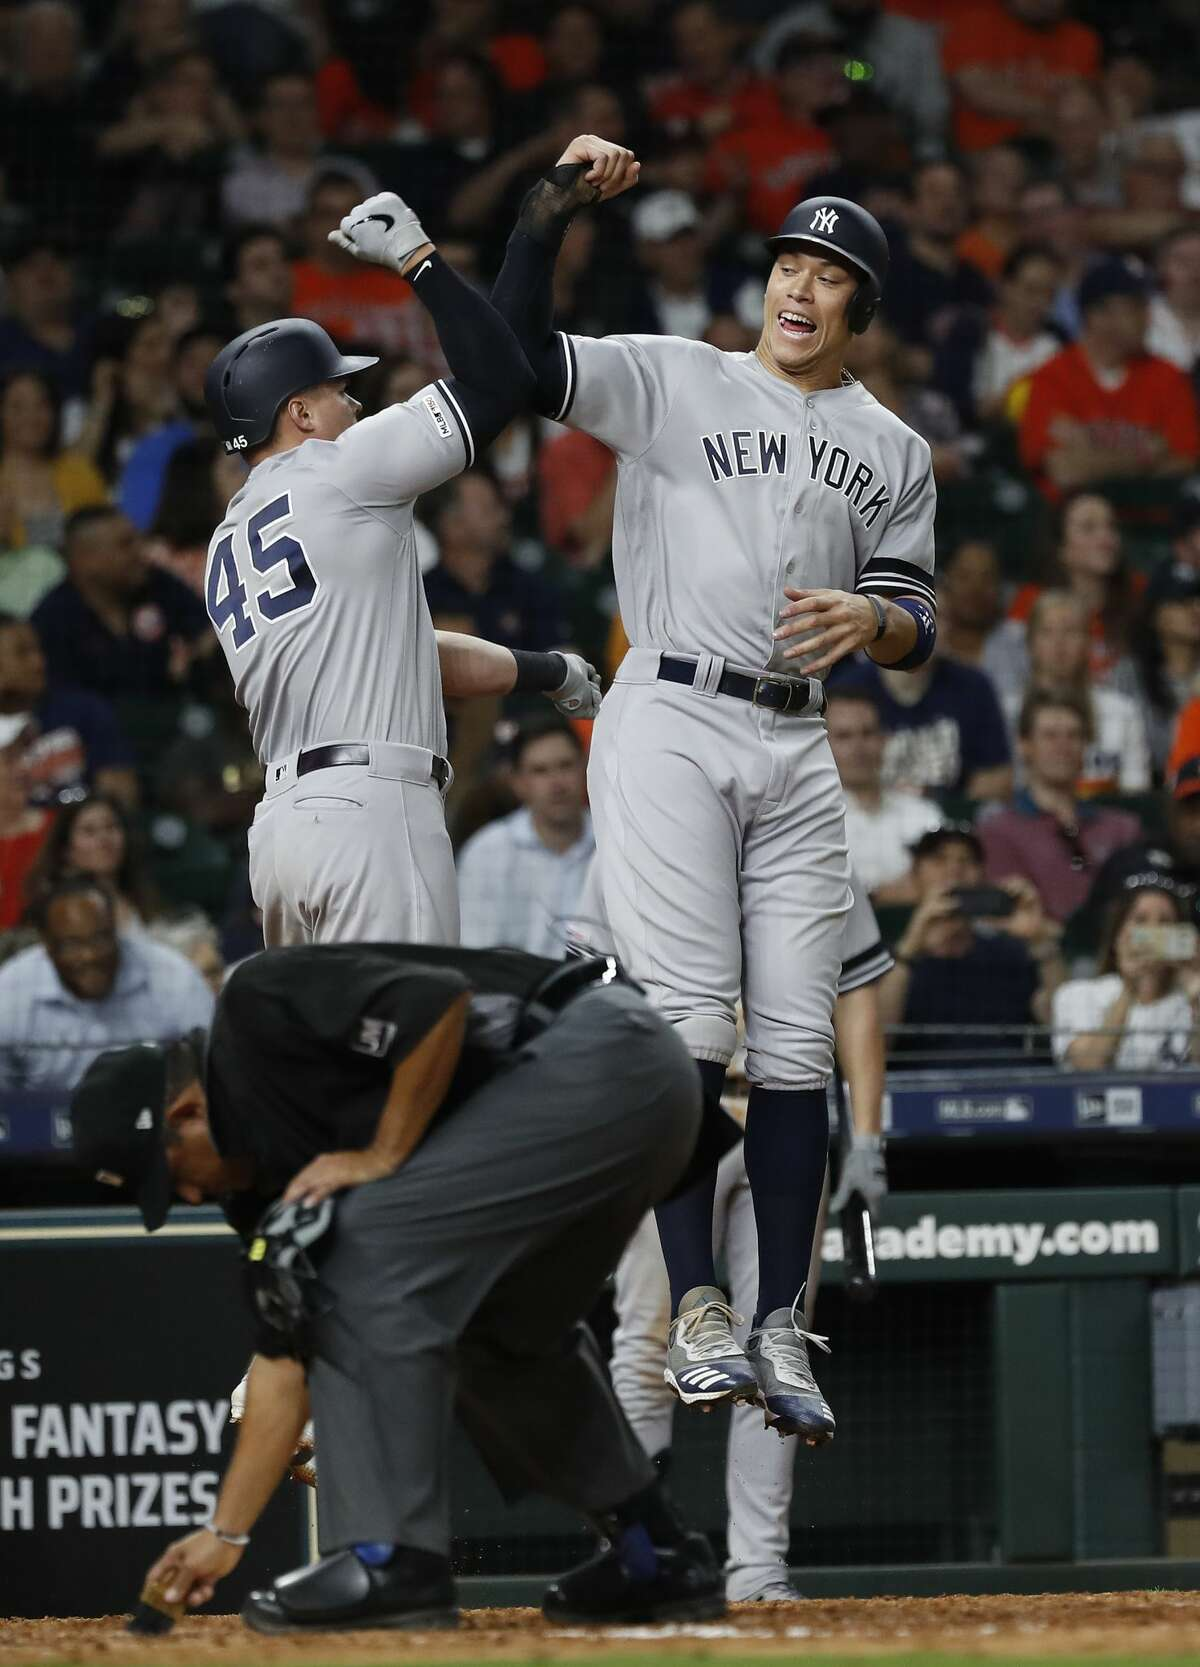 New York Yankees designated hitter Luke Voit celebrates his two-run home run with Aaron Judge (99) during the eighth inning of an MLB game at Minute Maid Park, Wednesday, April 10, 2019, in Houston.